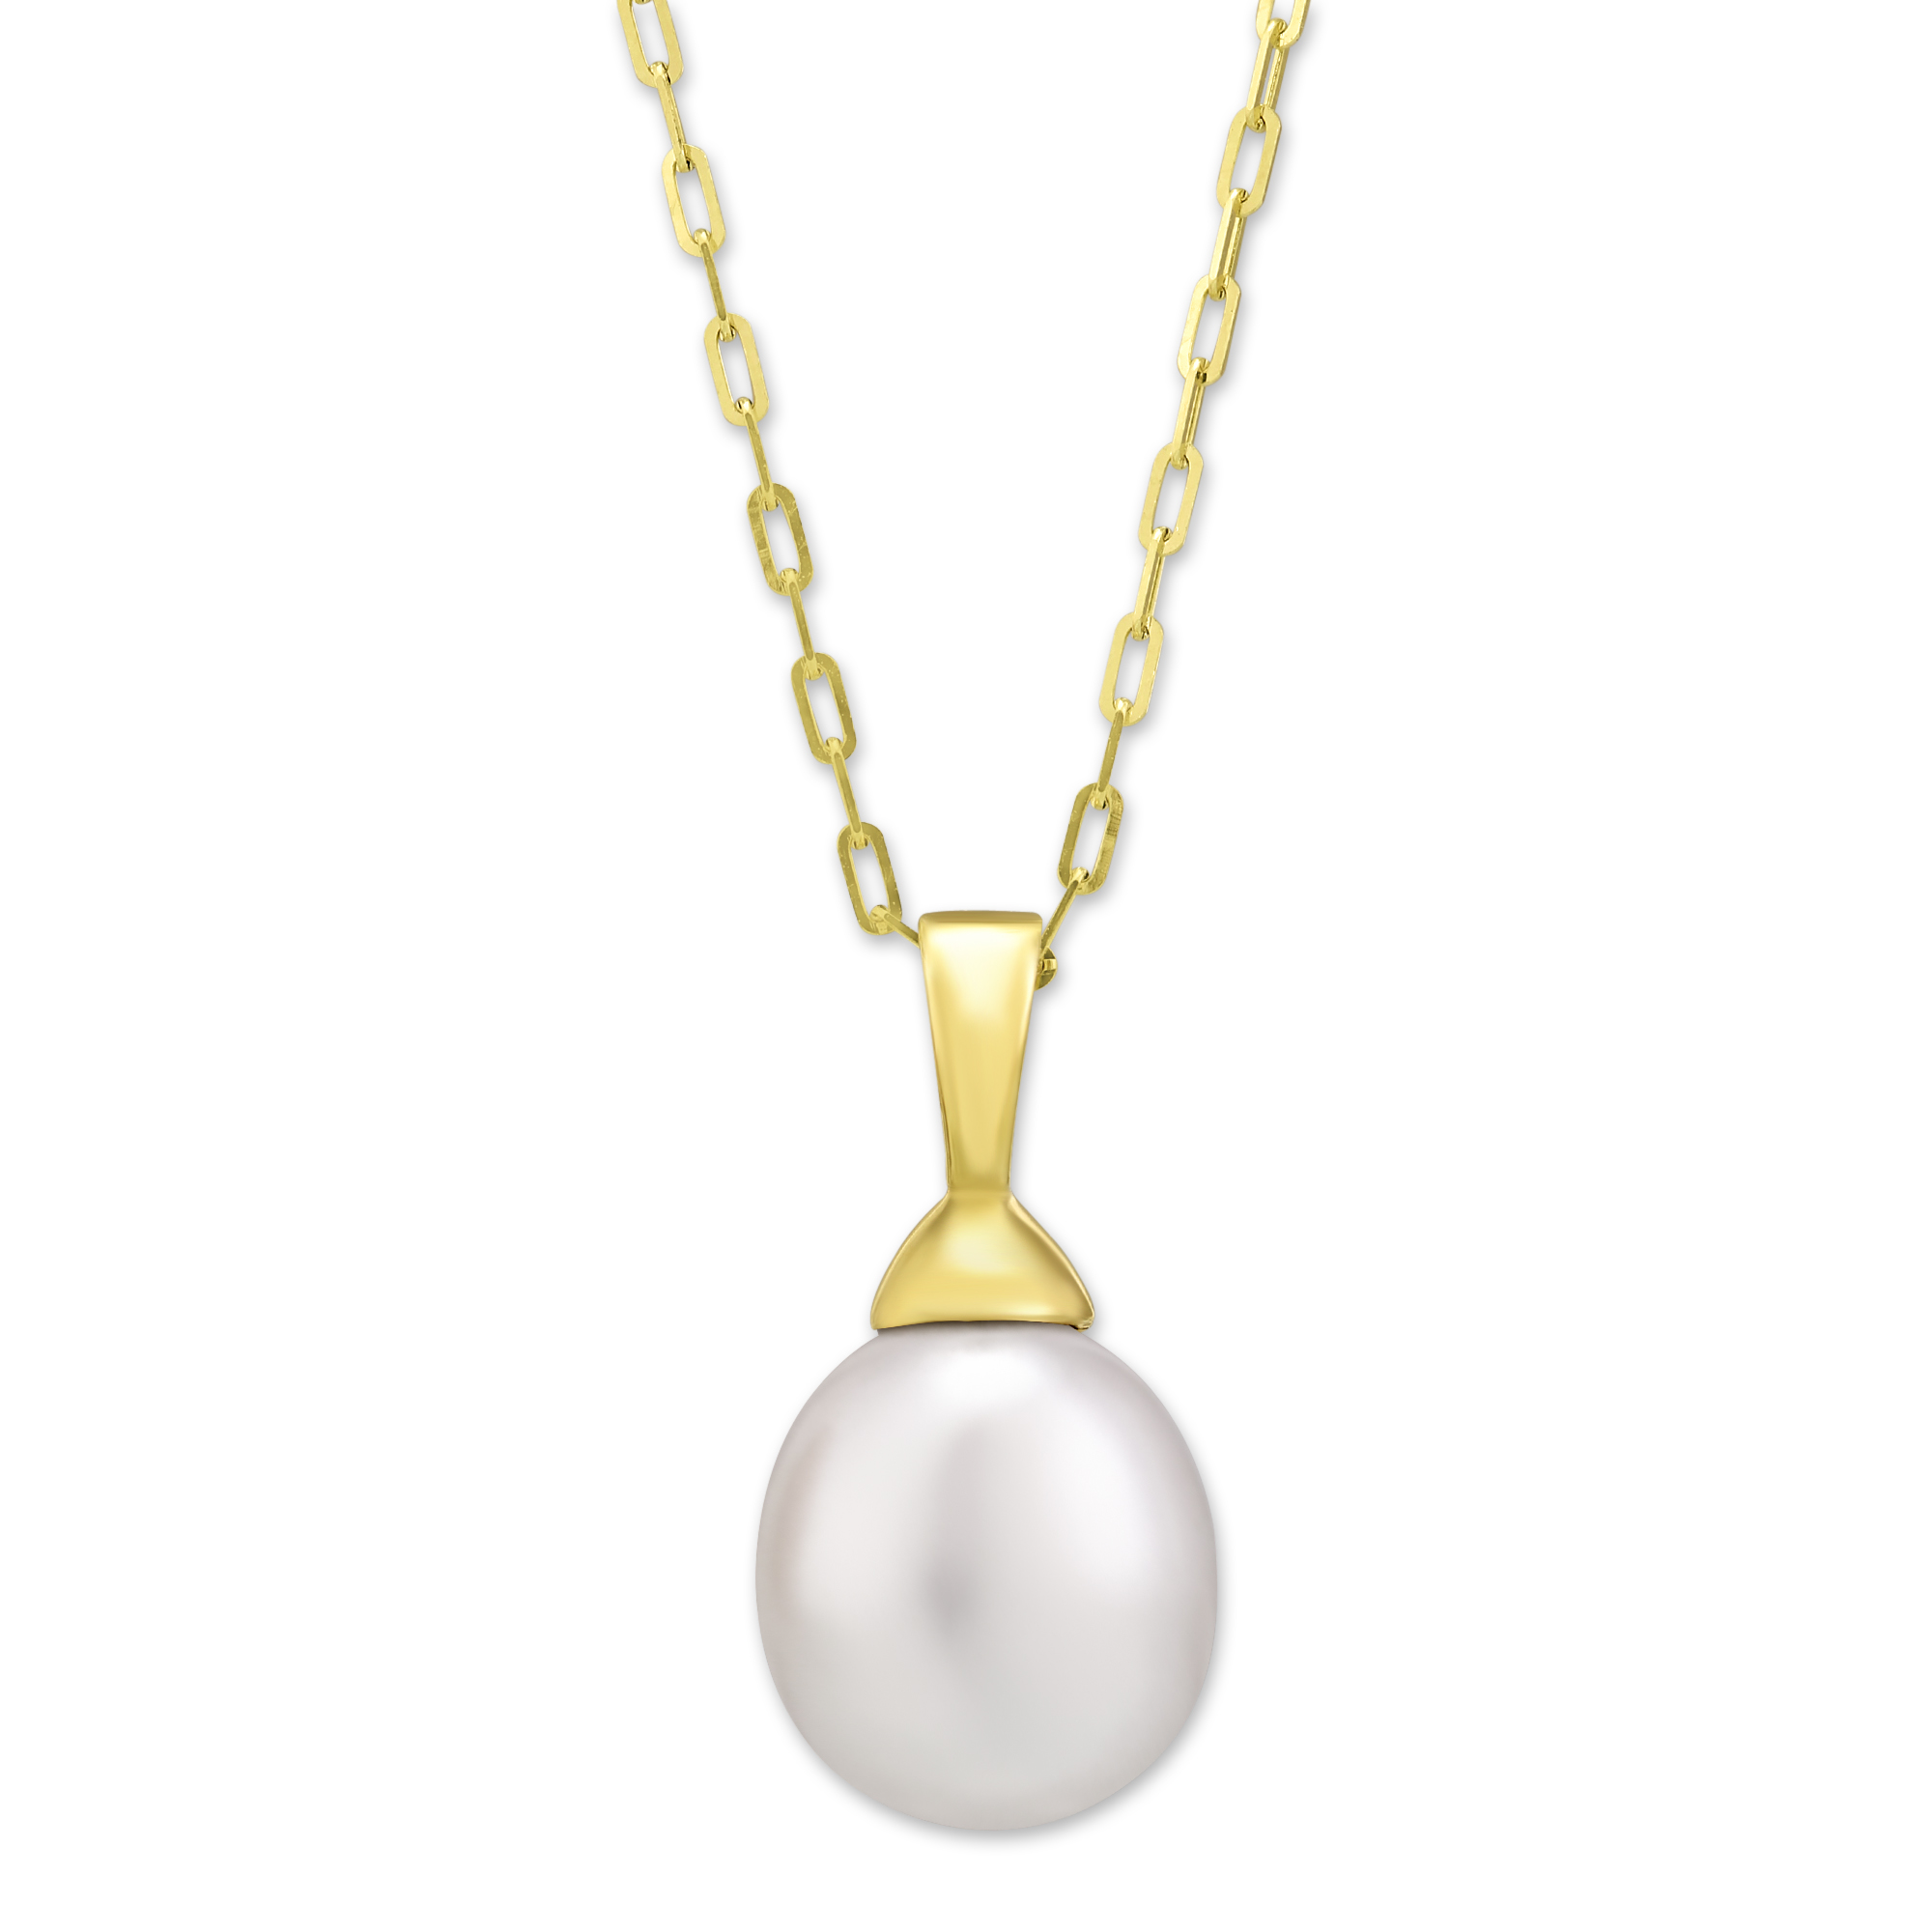 necklace jeweller pearl laings akoya cultured pendant strand mikimoto